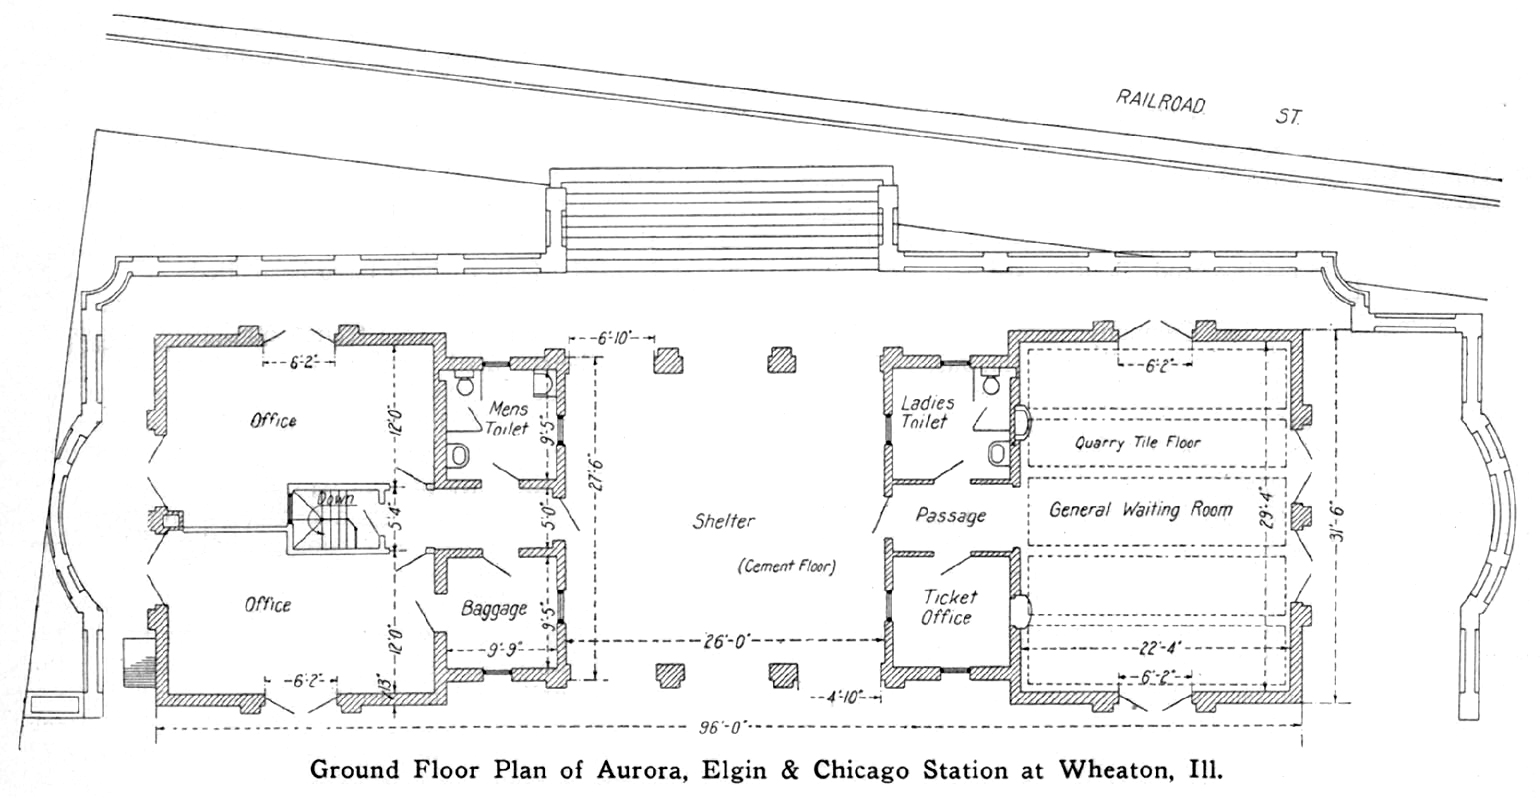 Wheaton for Railroad depot plans